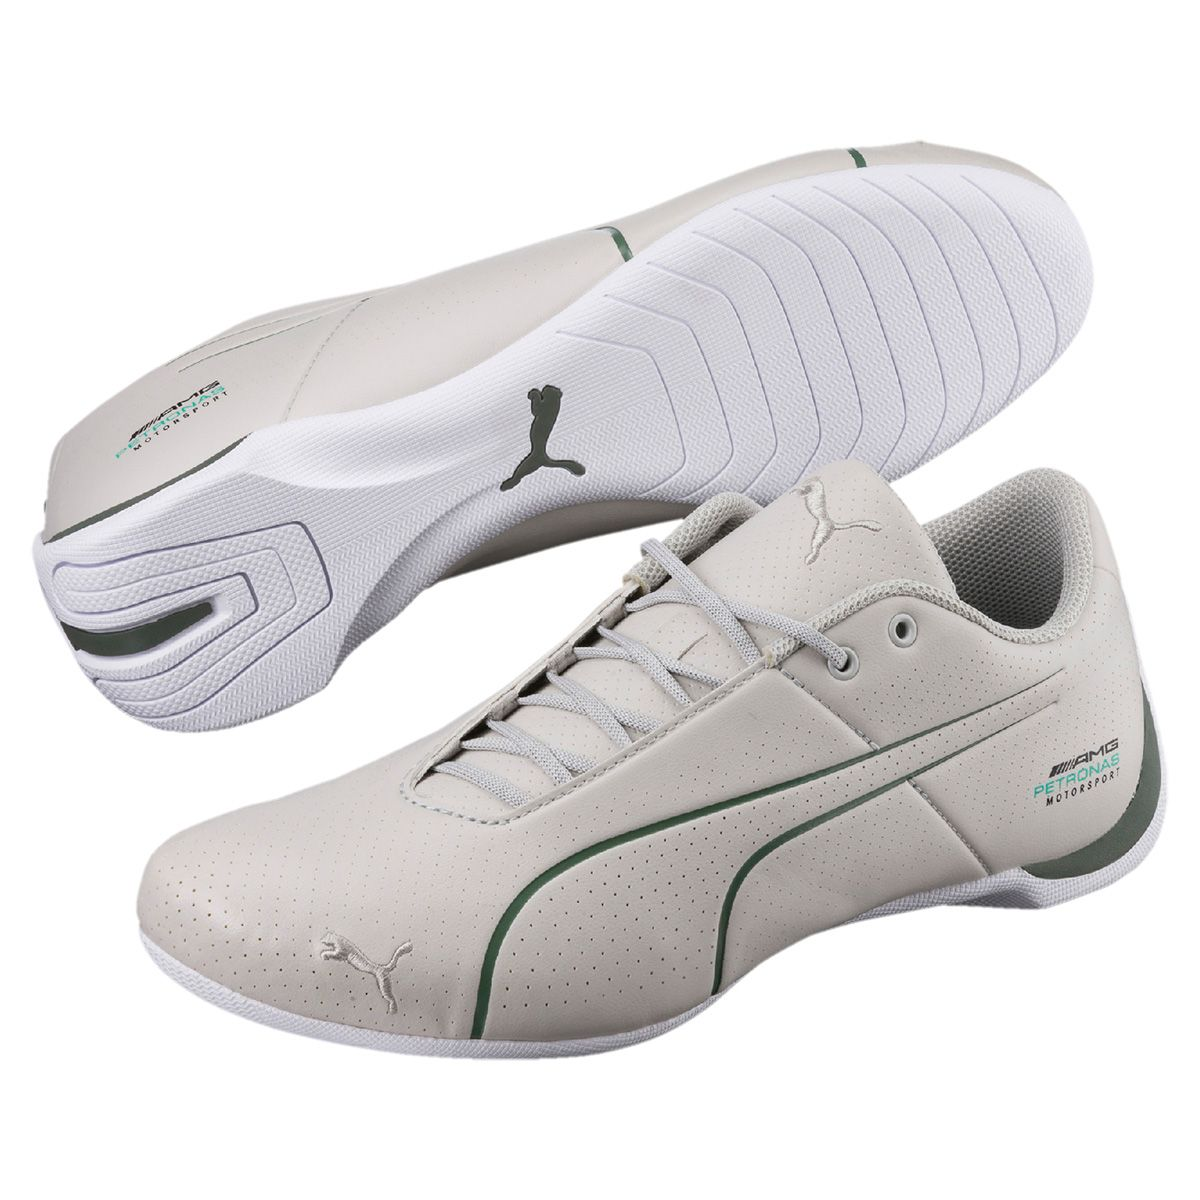 3956a48dd6f Tênis Couro Puma Mercedes Future Cat Ultra Masculino - Off White ...